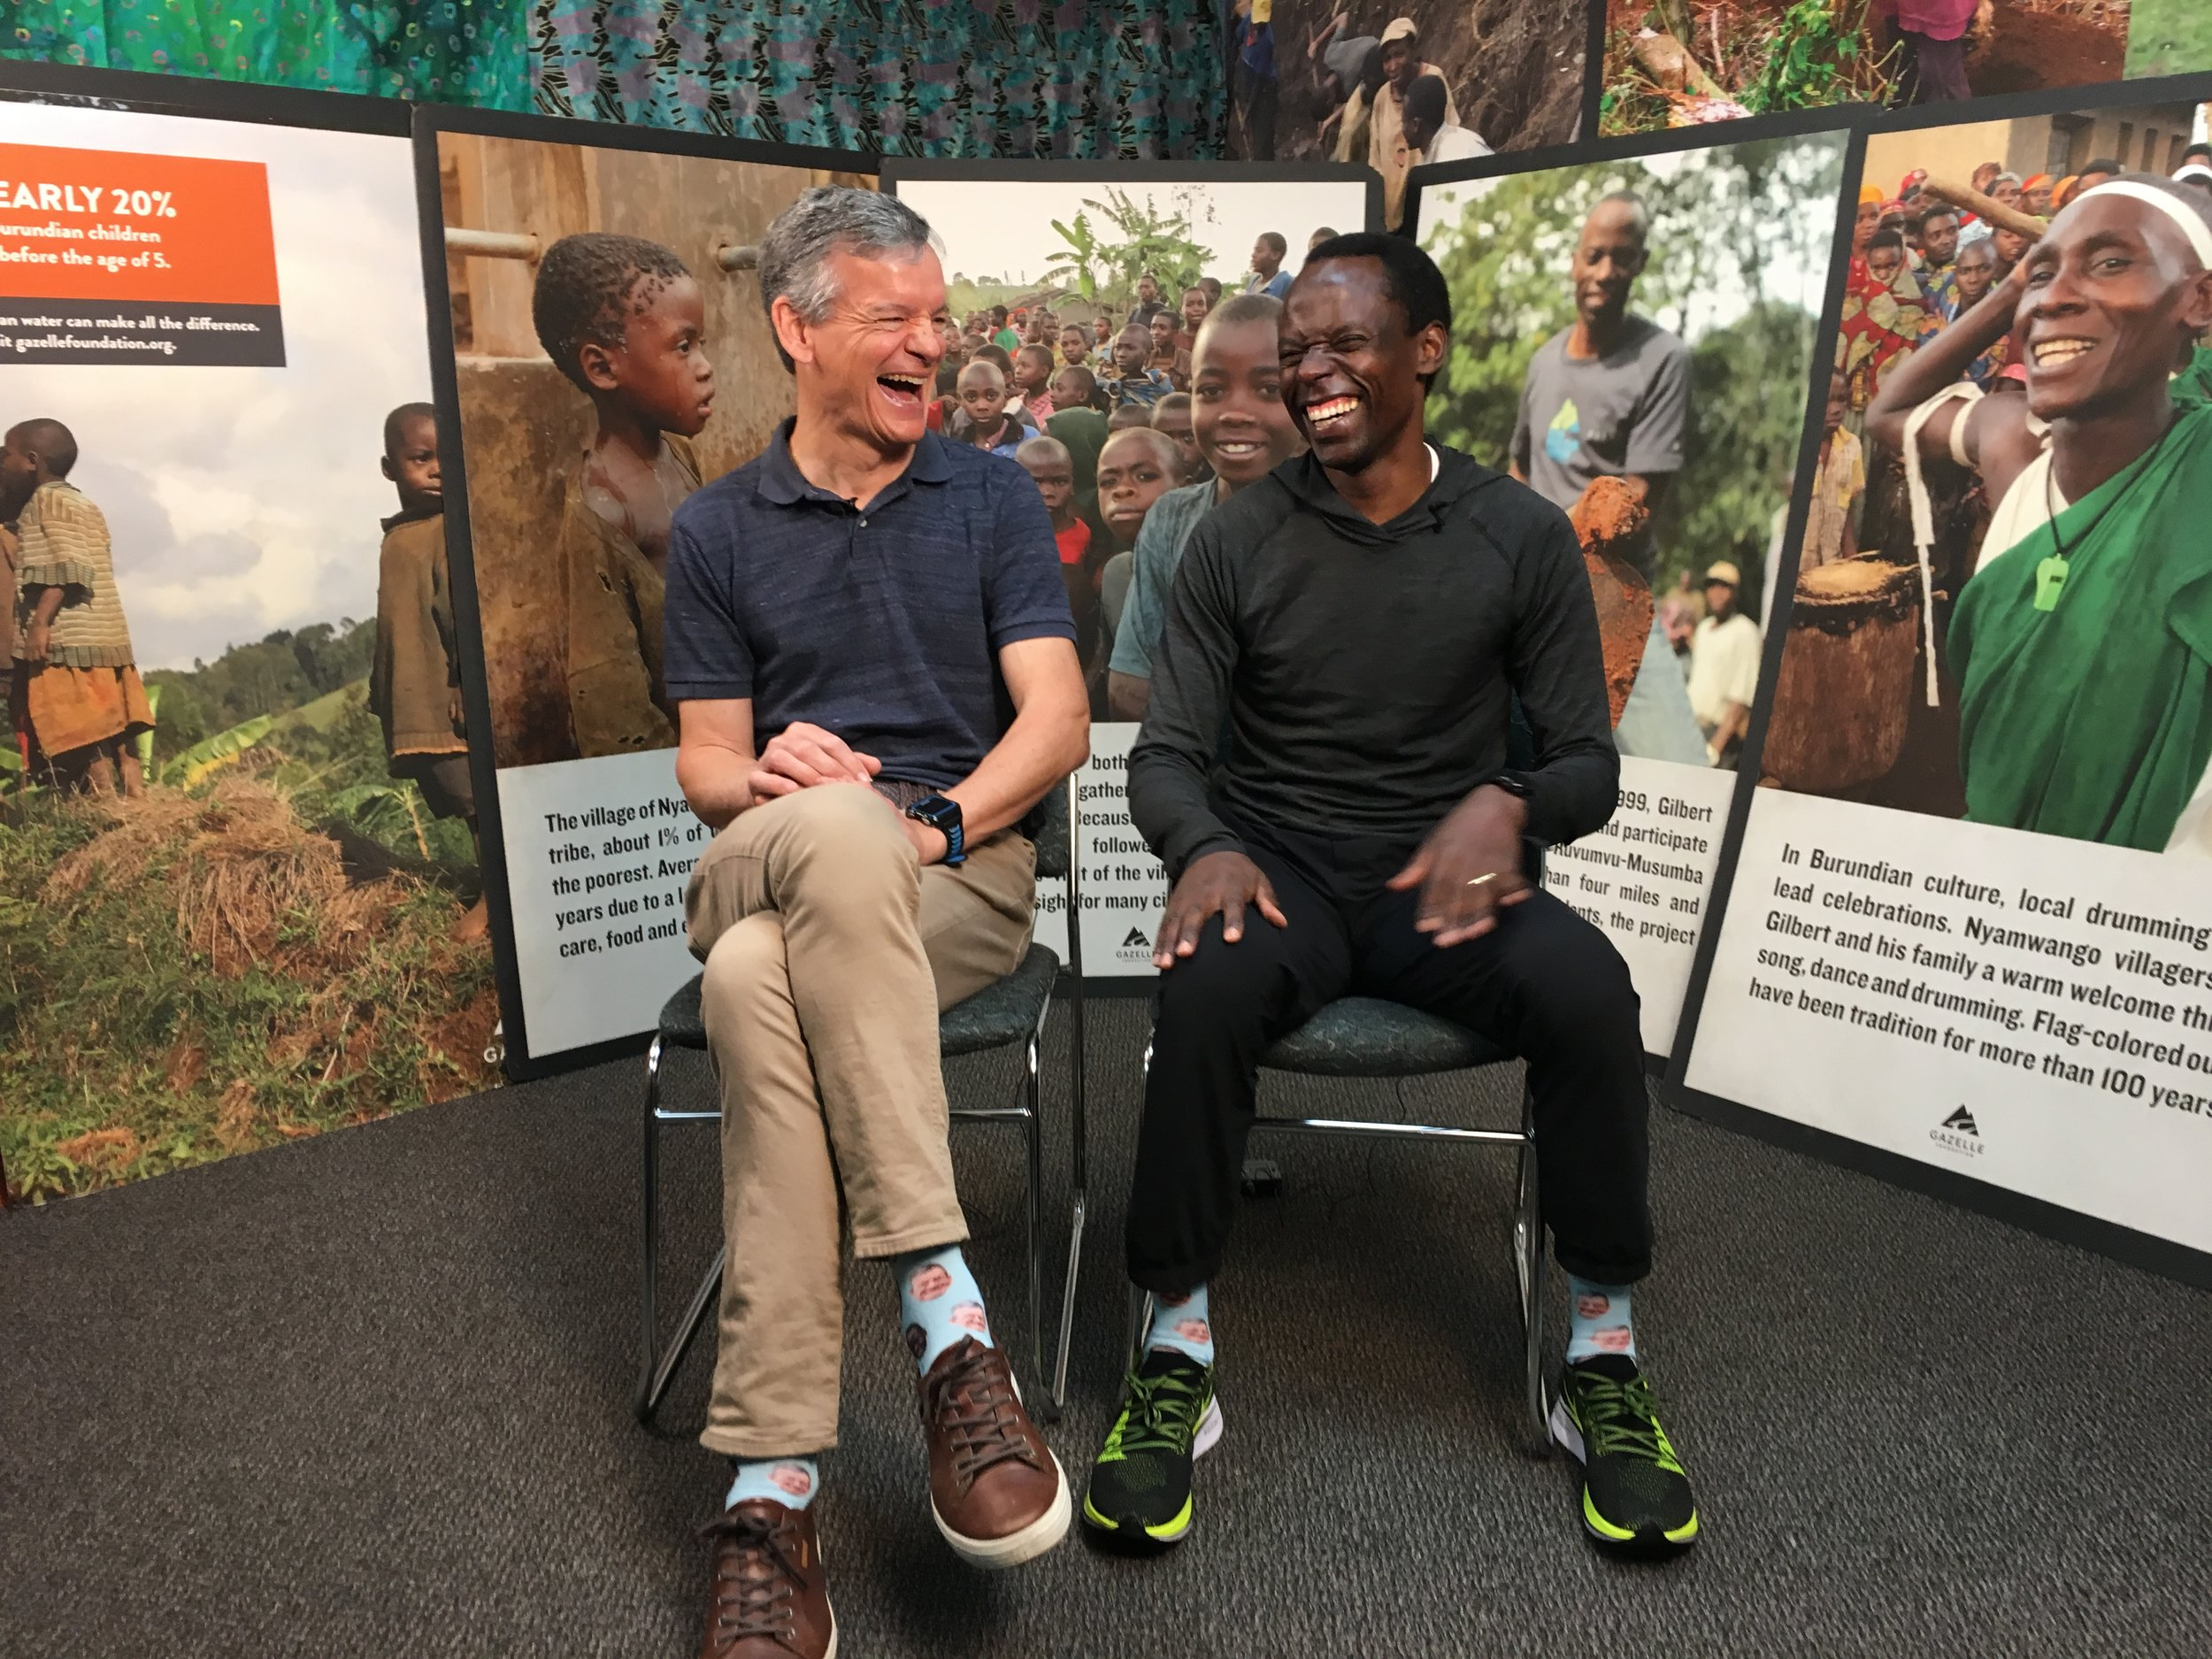 Peter Rauch and Gilbert Tuhabonye reminisce about how they first met, and the 23 mile run where the foundation was conceived by Paul Pugh, Peter Rauch and Gilbert Tuhabonye. Peter Rauch has been a tireless champion of the Gazelle Foundation for the water since day one. (photo March 2019, Gazelle Foundation offices in Austin Texas)